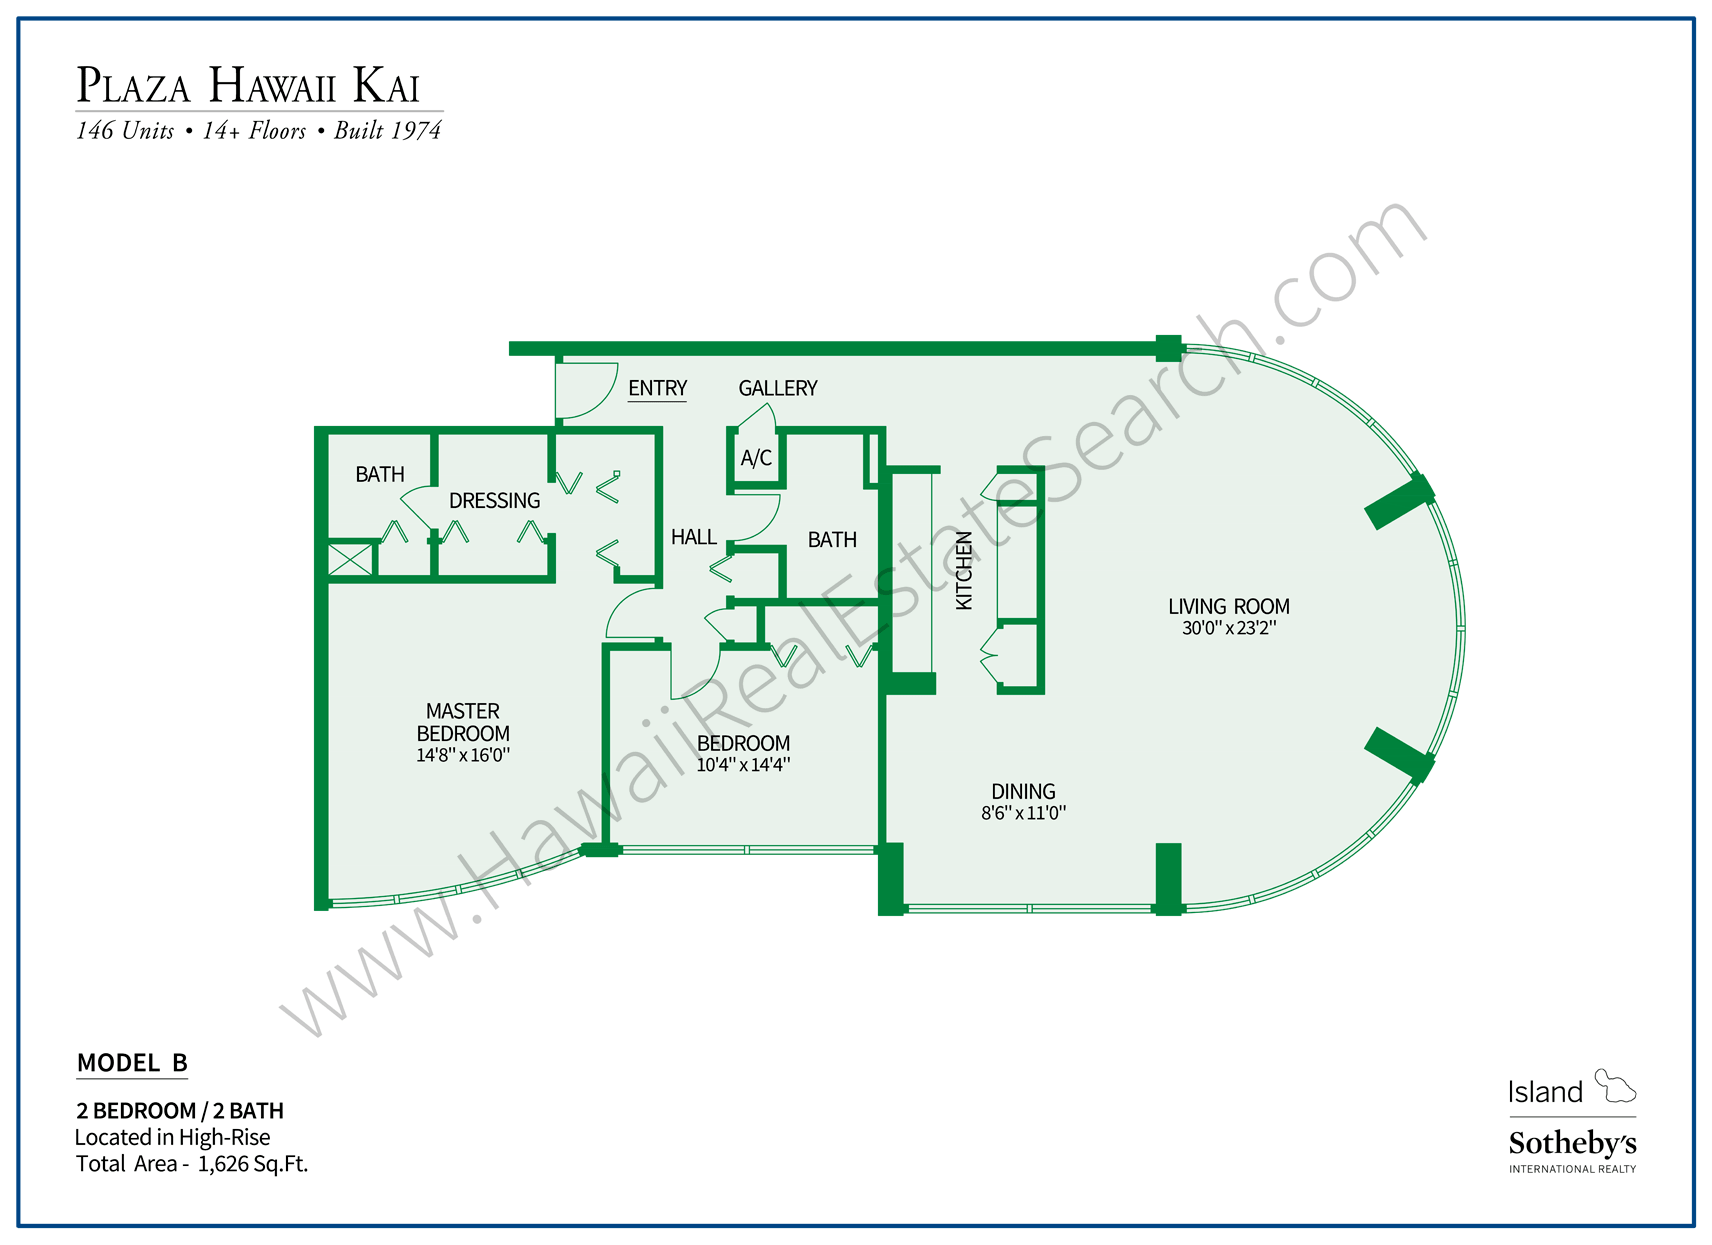 Plaza Hawaii Kai Floor Plan B